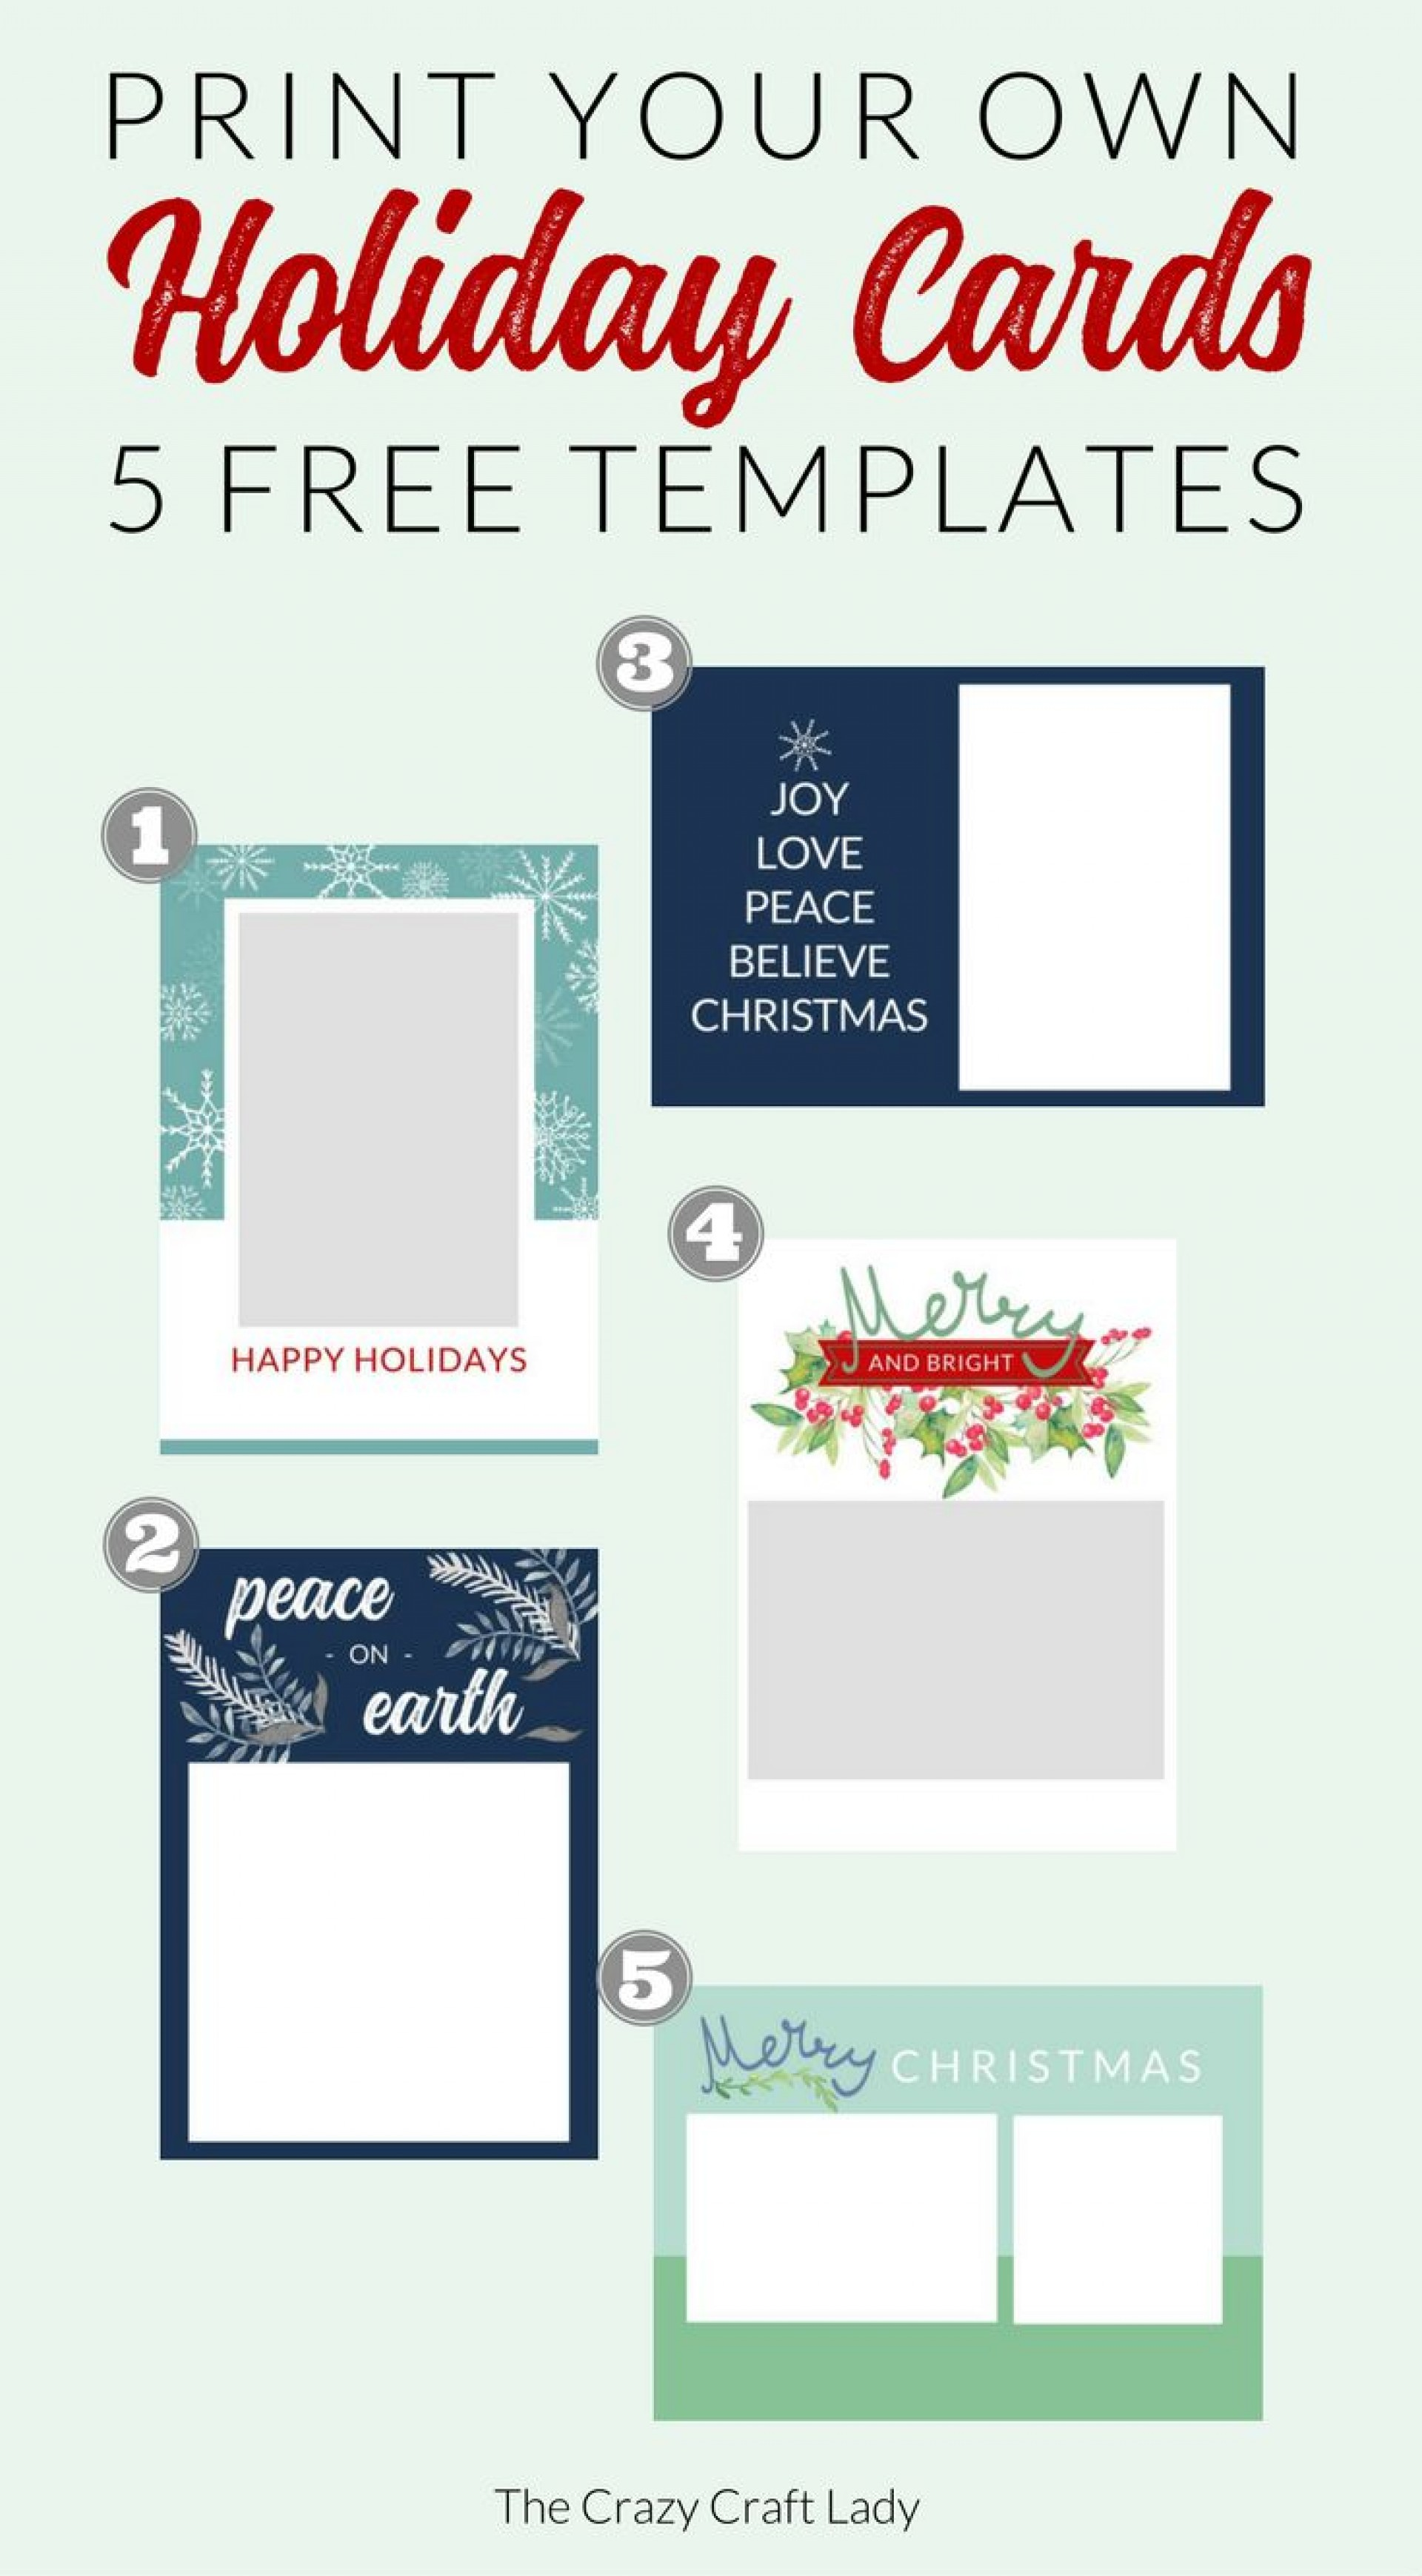 007 Fantastic Free Download Holiday Card Template Concept 1920